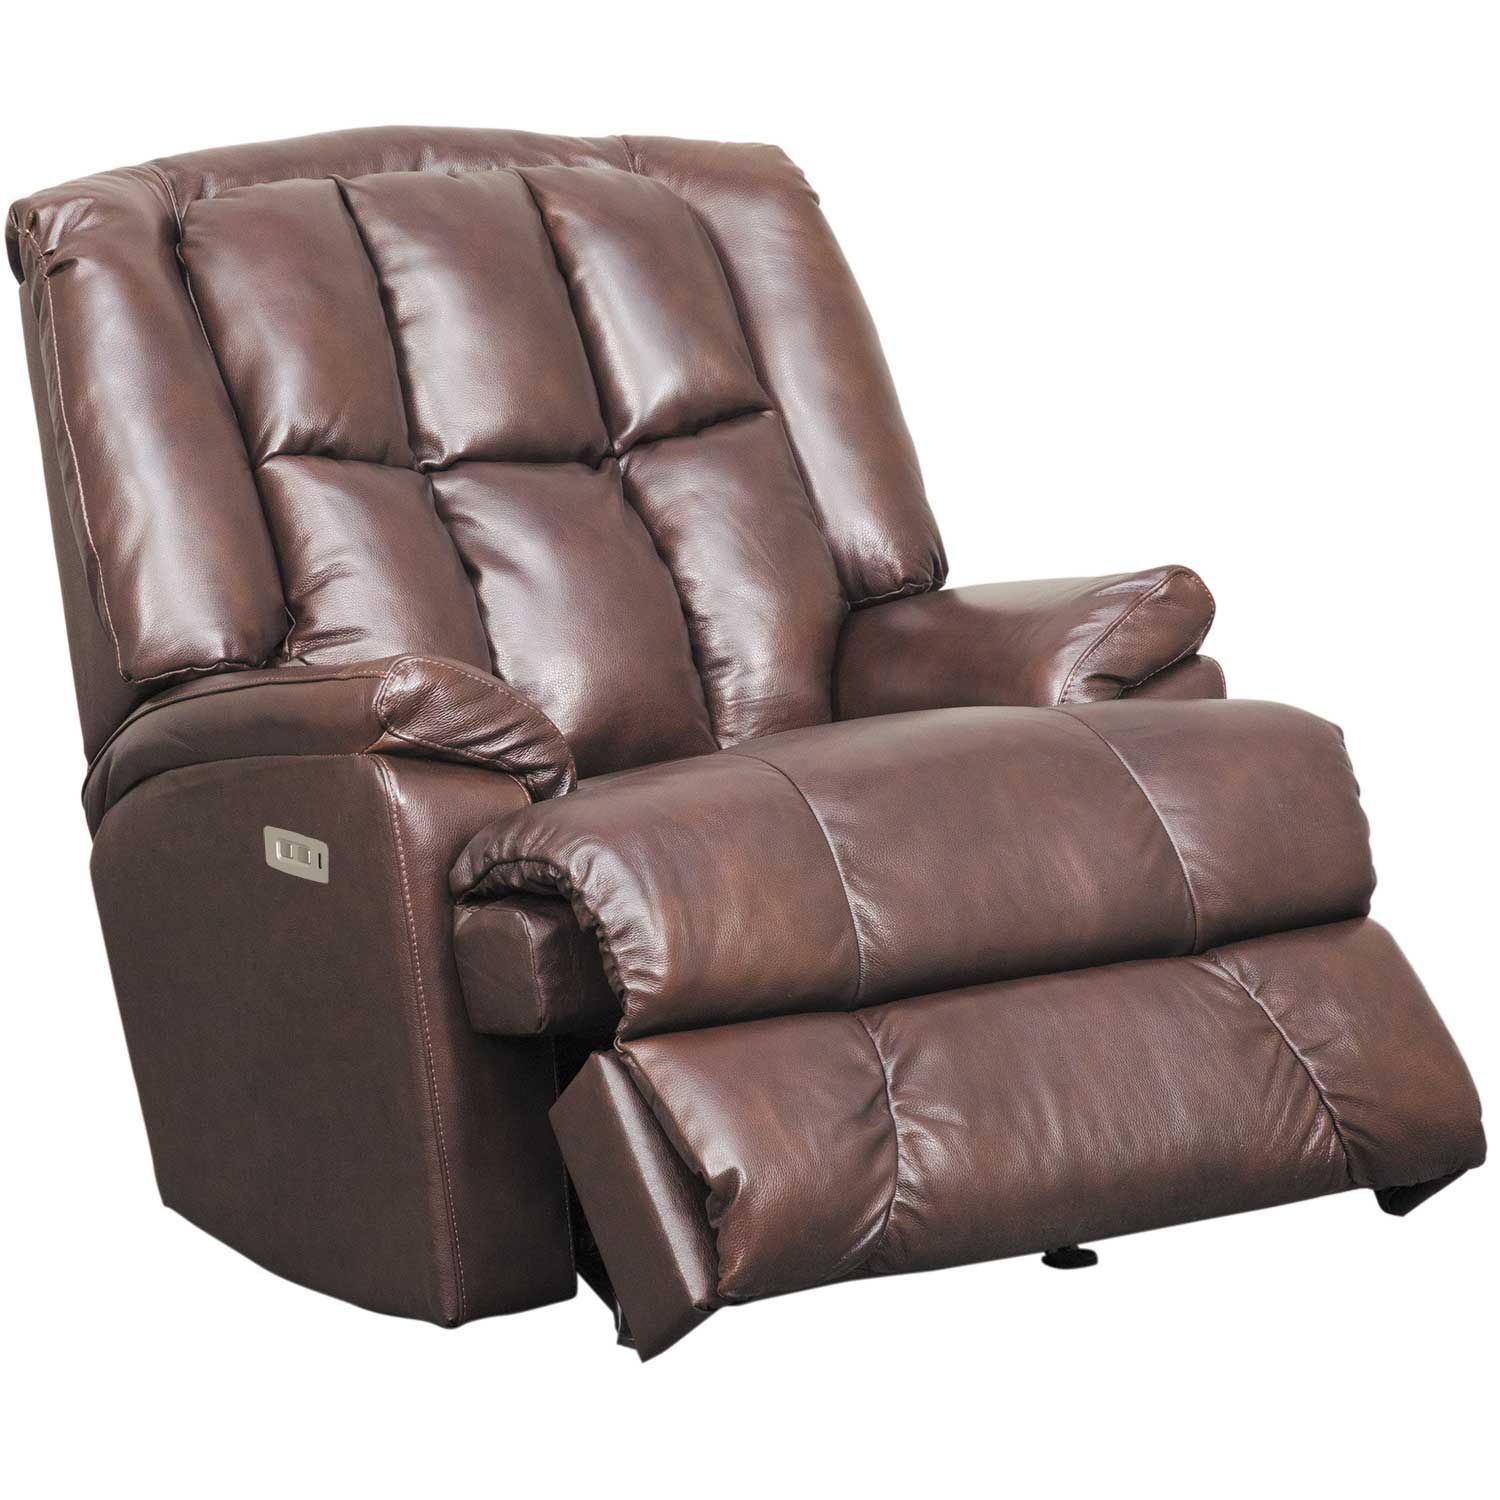 Picture of Comfort King Leather Rocker Power Recliner